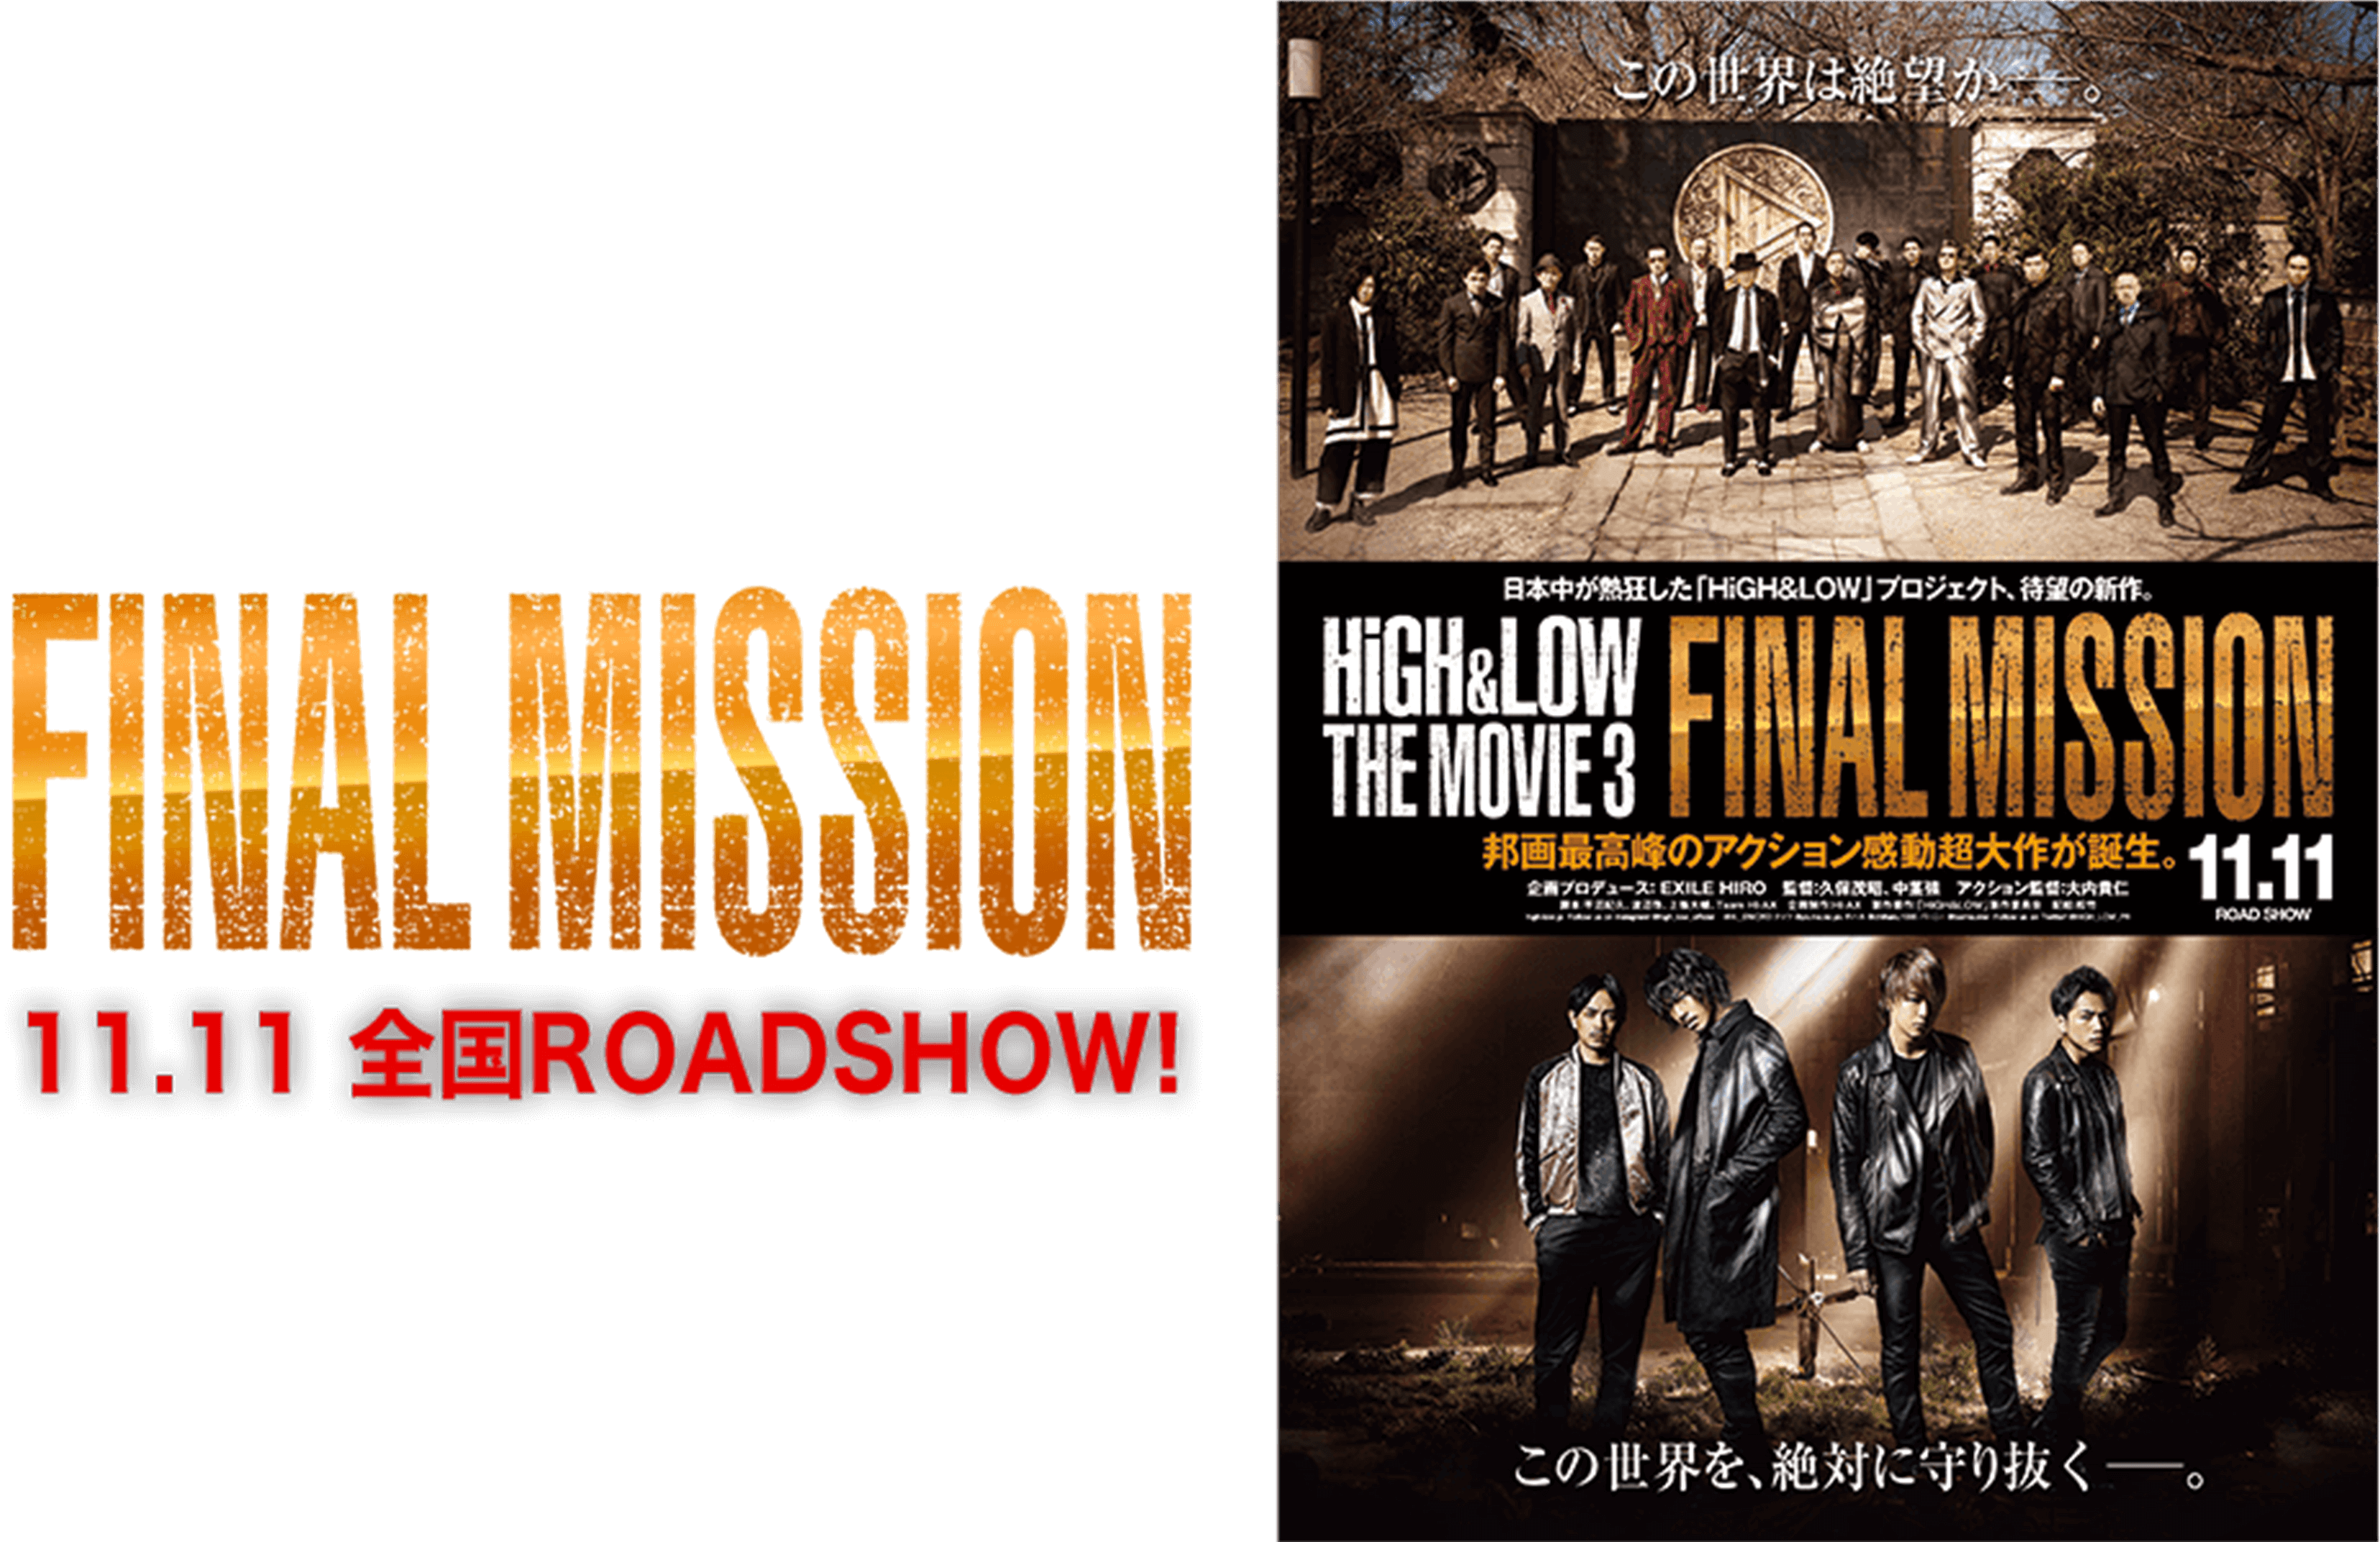 high & low the movie 3 final mission full movie download